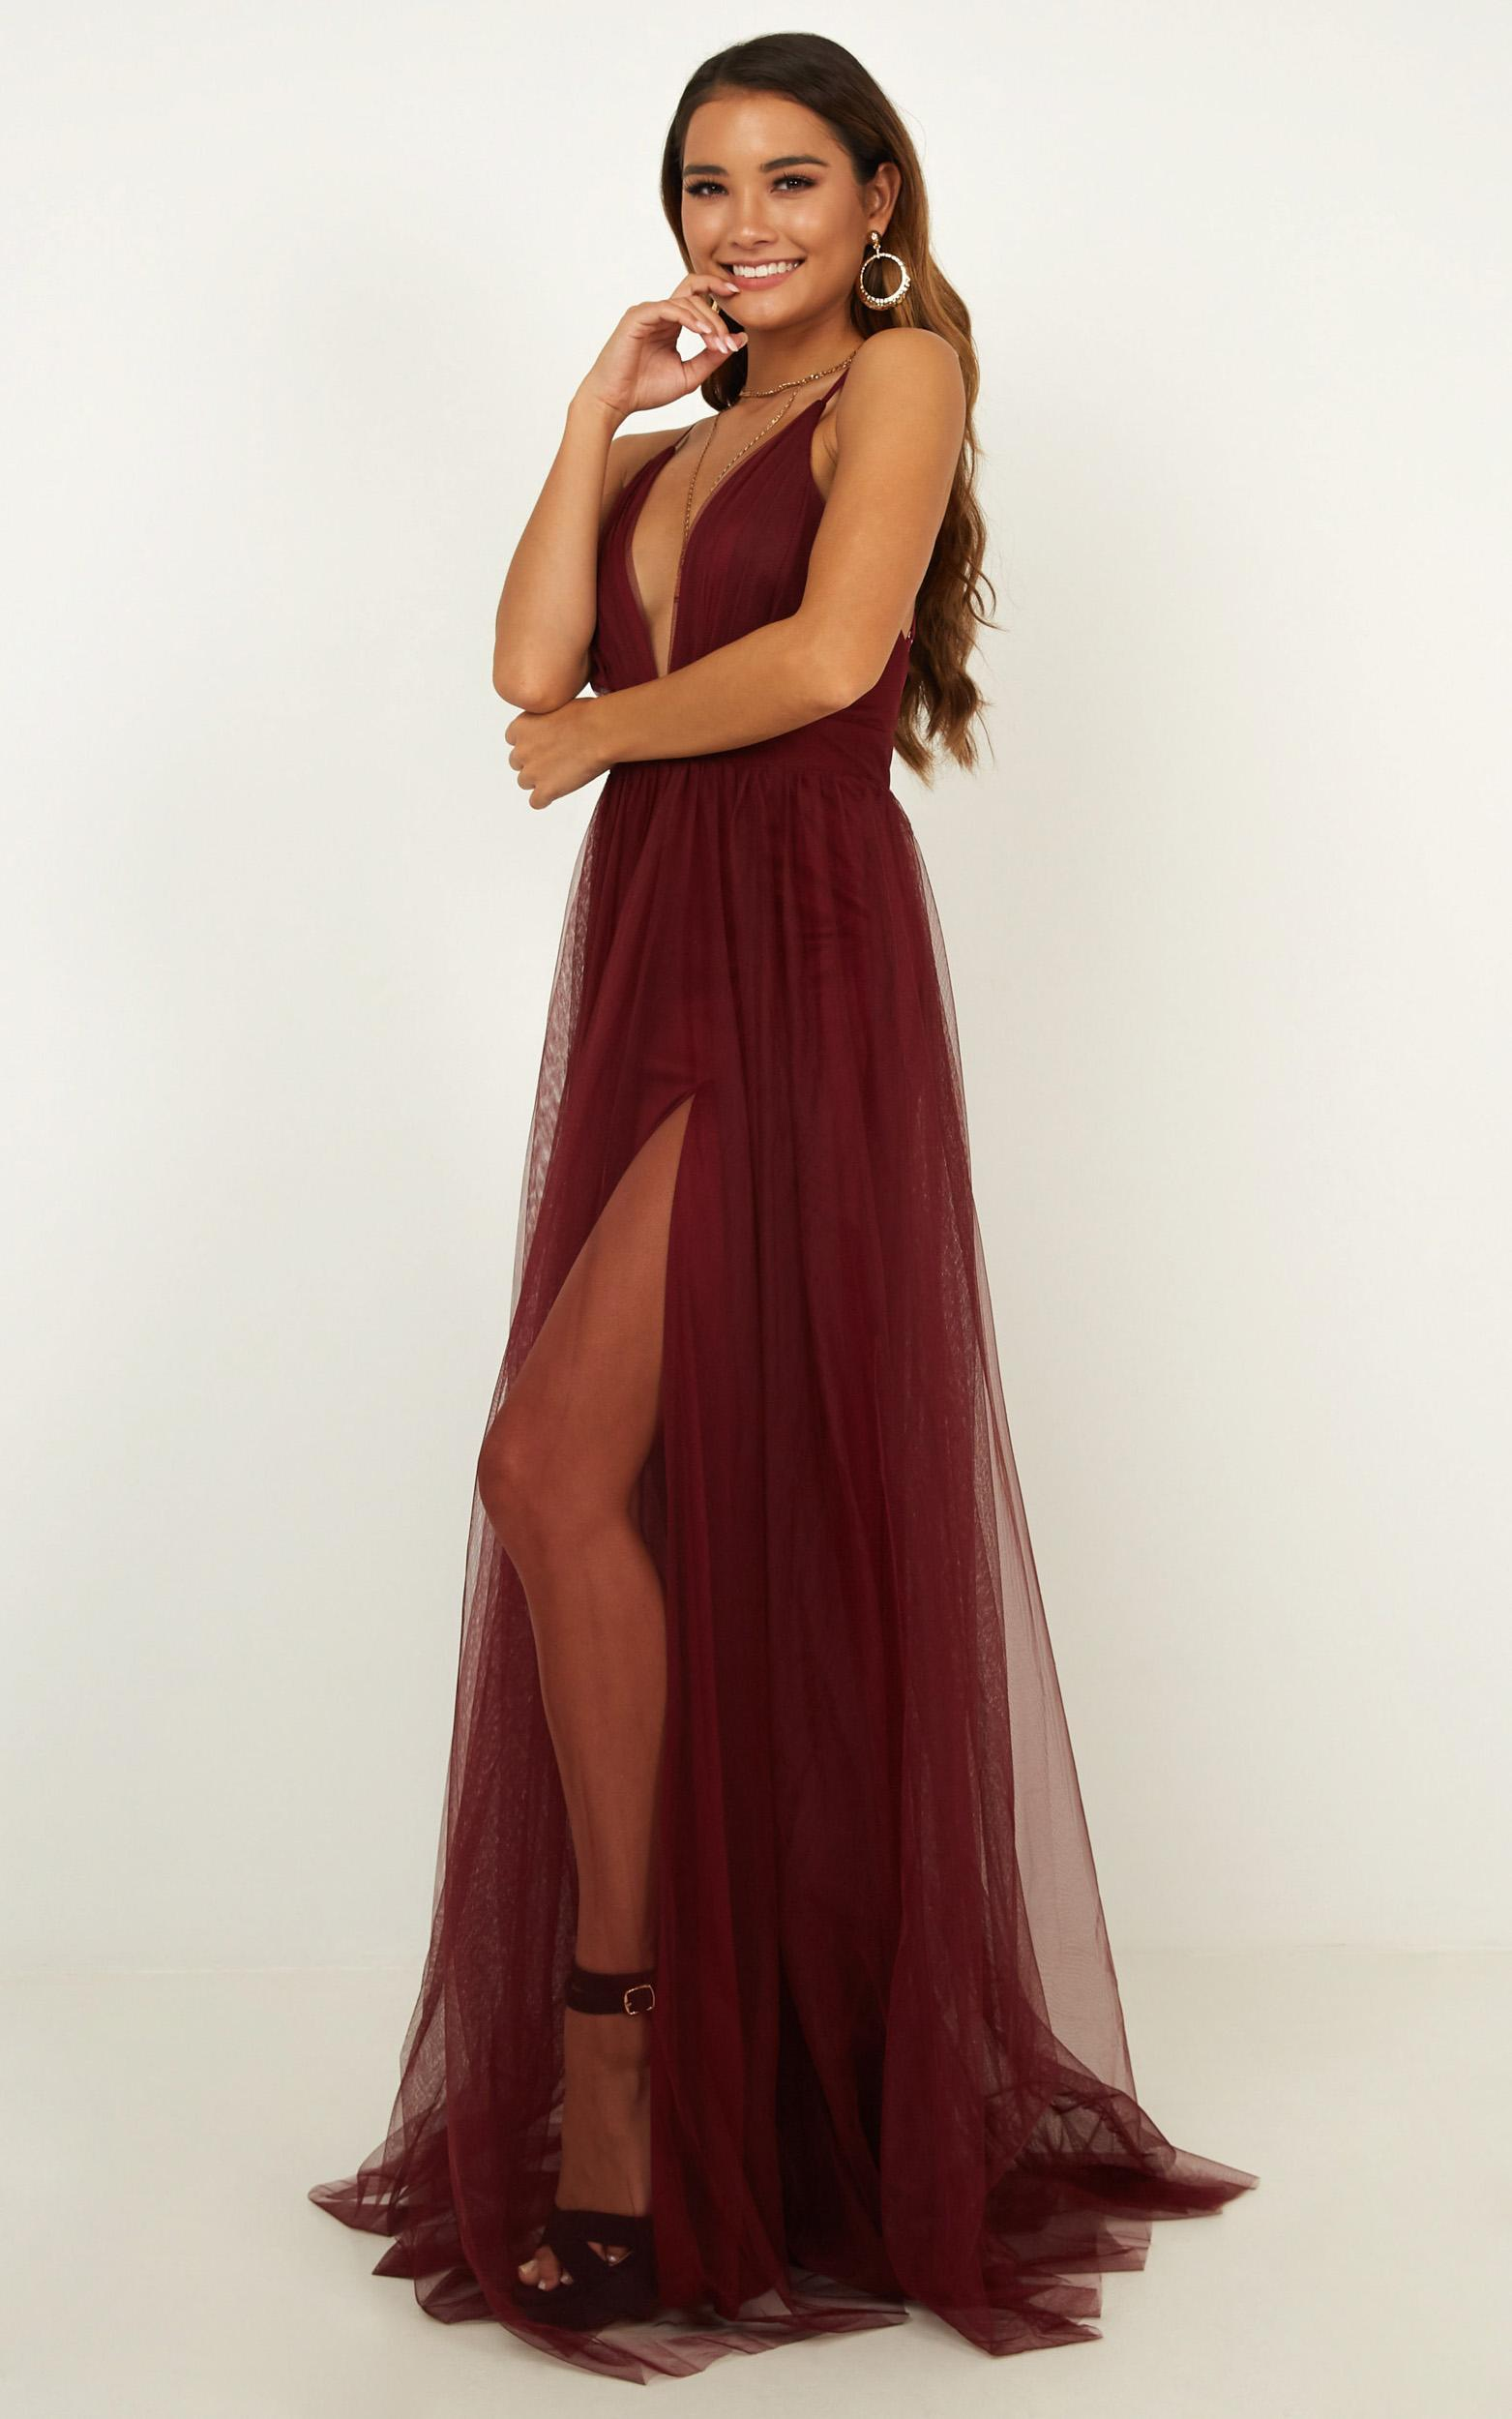 Celebrate Tonight Maxi Dress In Wine - 14 (XL), Navy, hi-res image number null